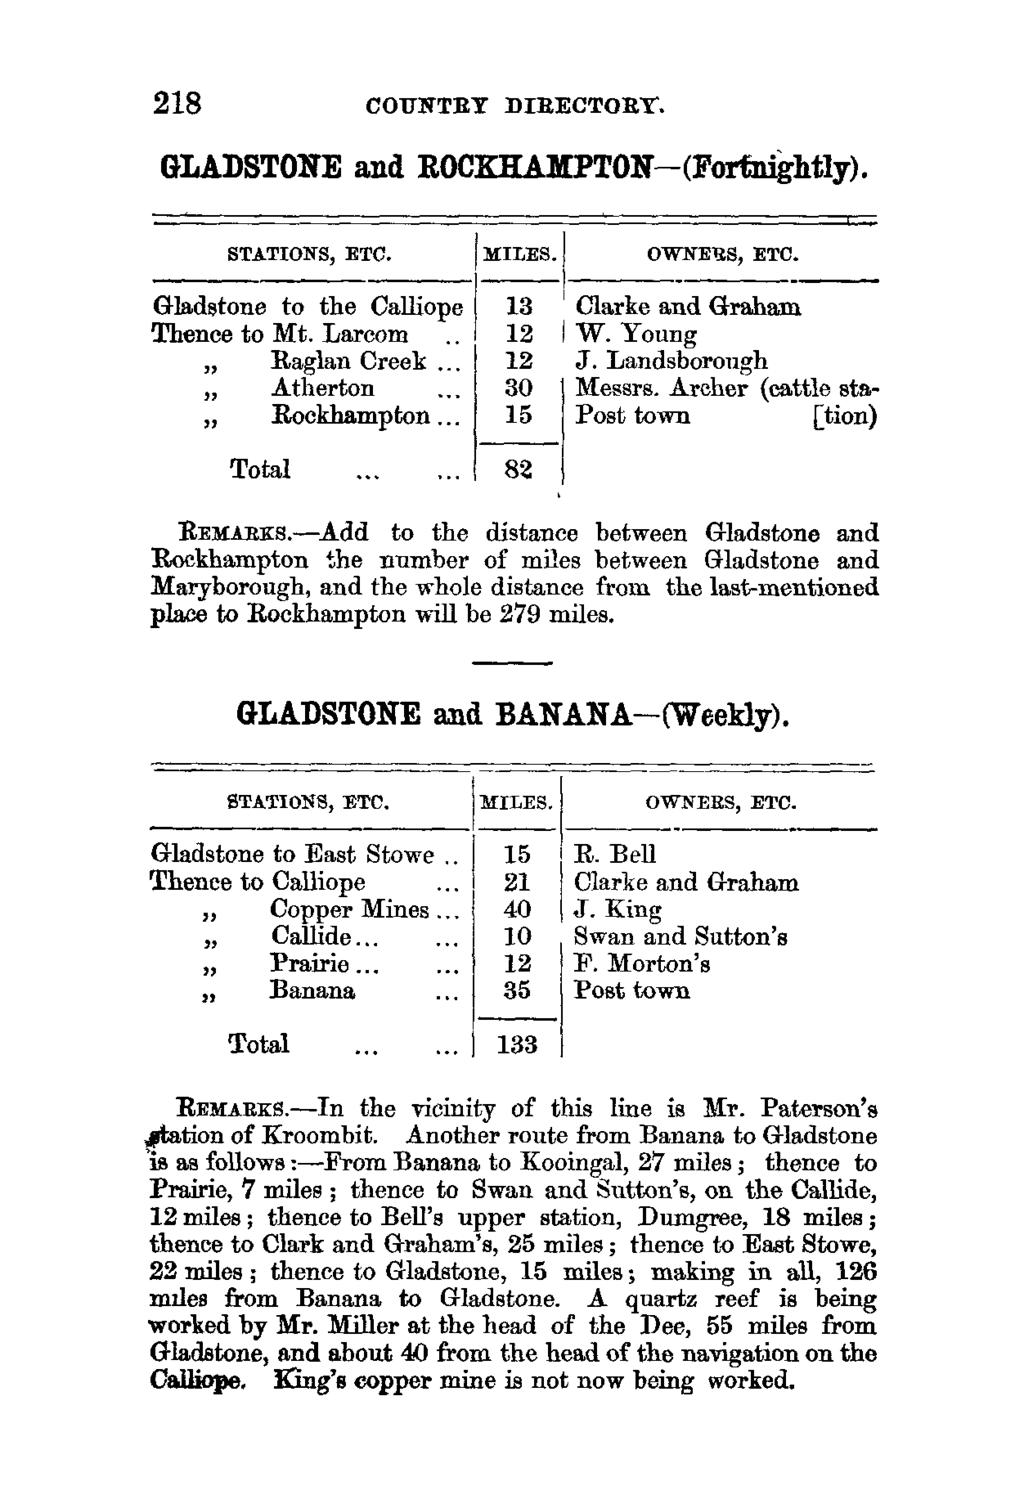 218 COUNTRY DIRECTORY. GLADSTONE and ROCKHAMPTON-( Fortnightly). STATIONS, ETC. MILES. I OWNERS, ETC. Gladstone to the Calliope 13 Clarke and Graham Thence to Mt. Larcom 12 W. Young Raglan Creek.